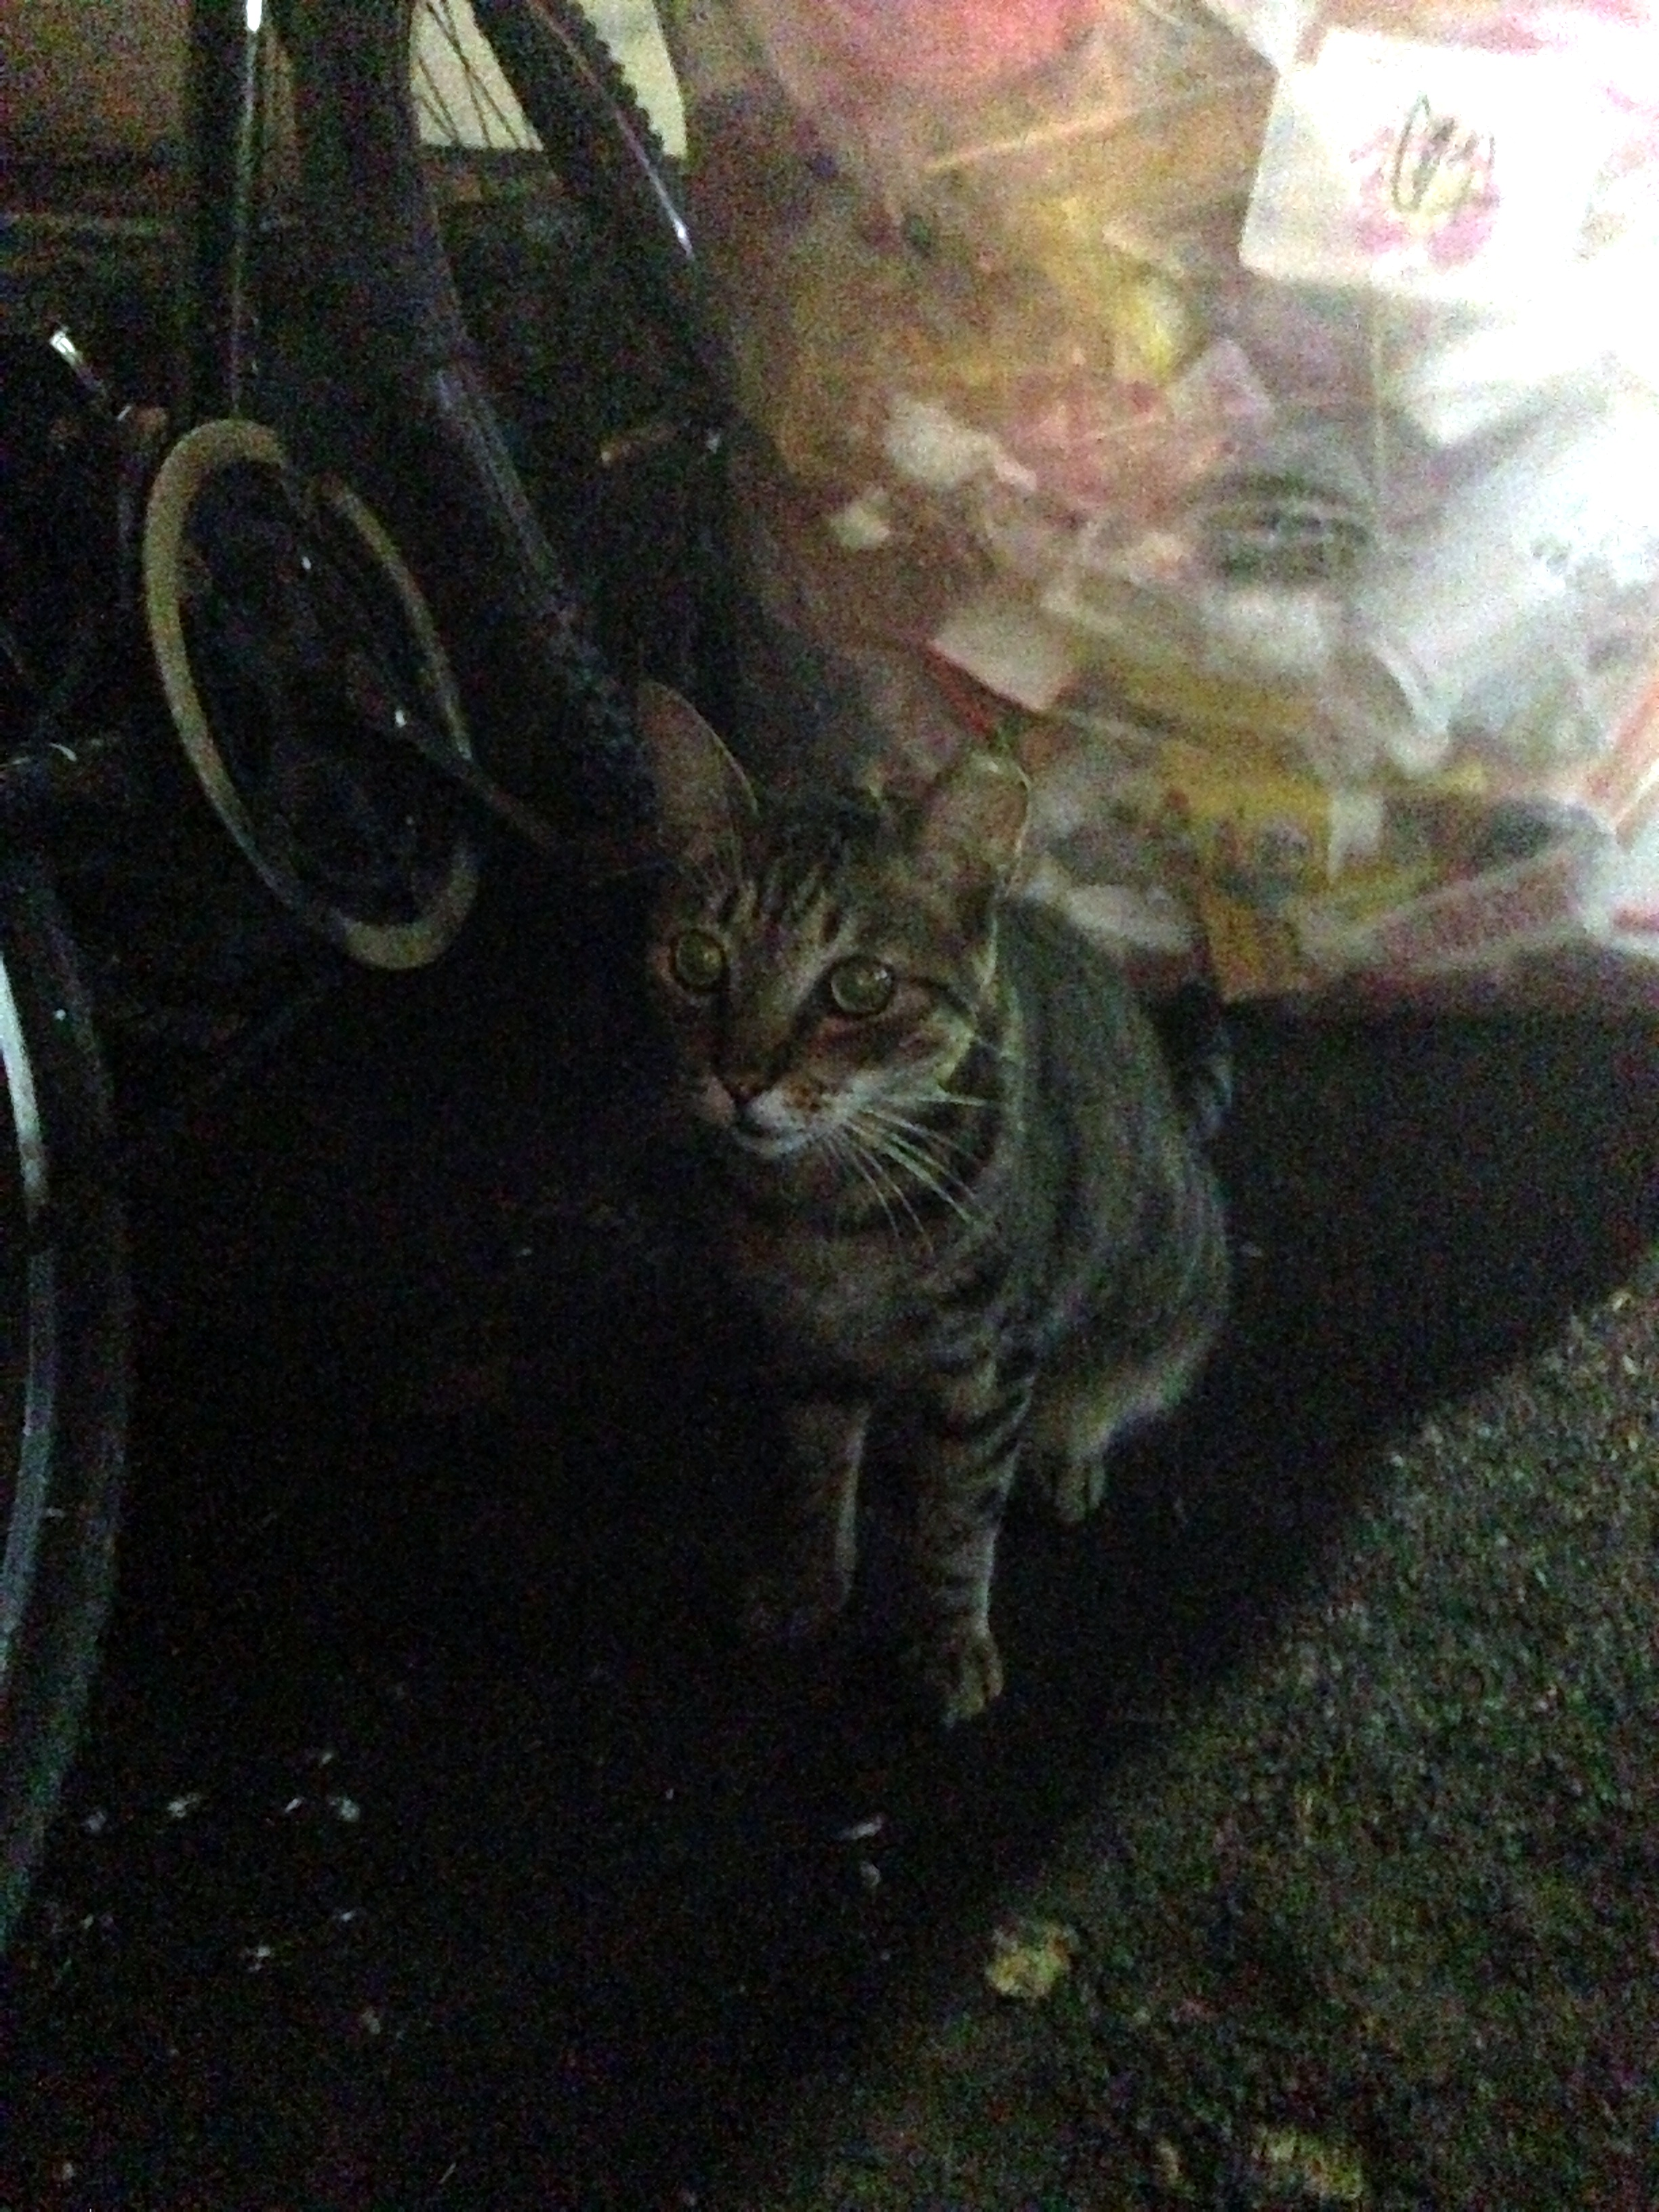 Take out the trash cat